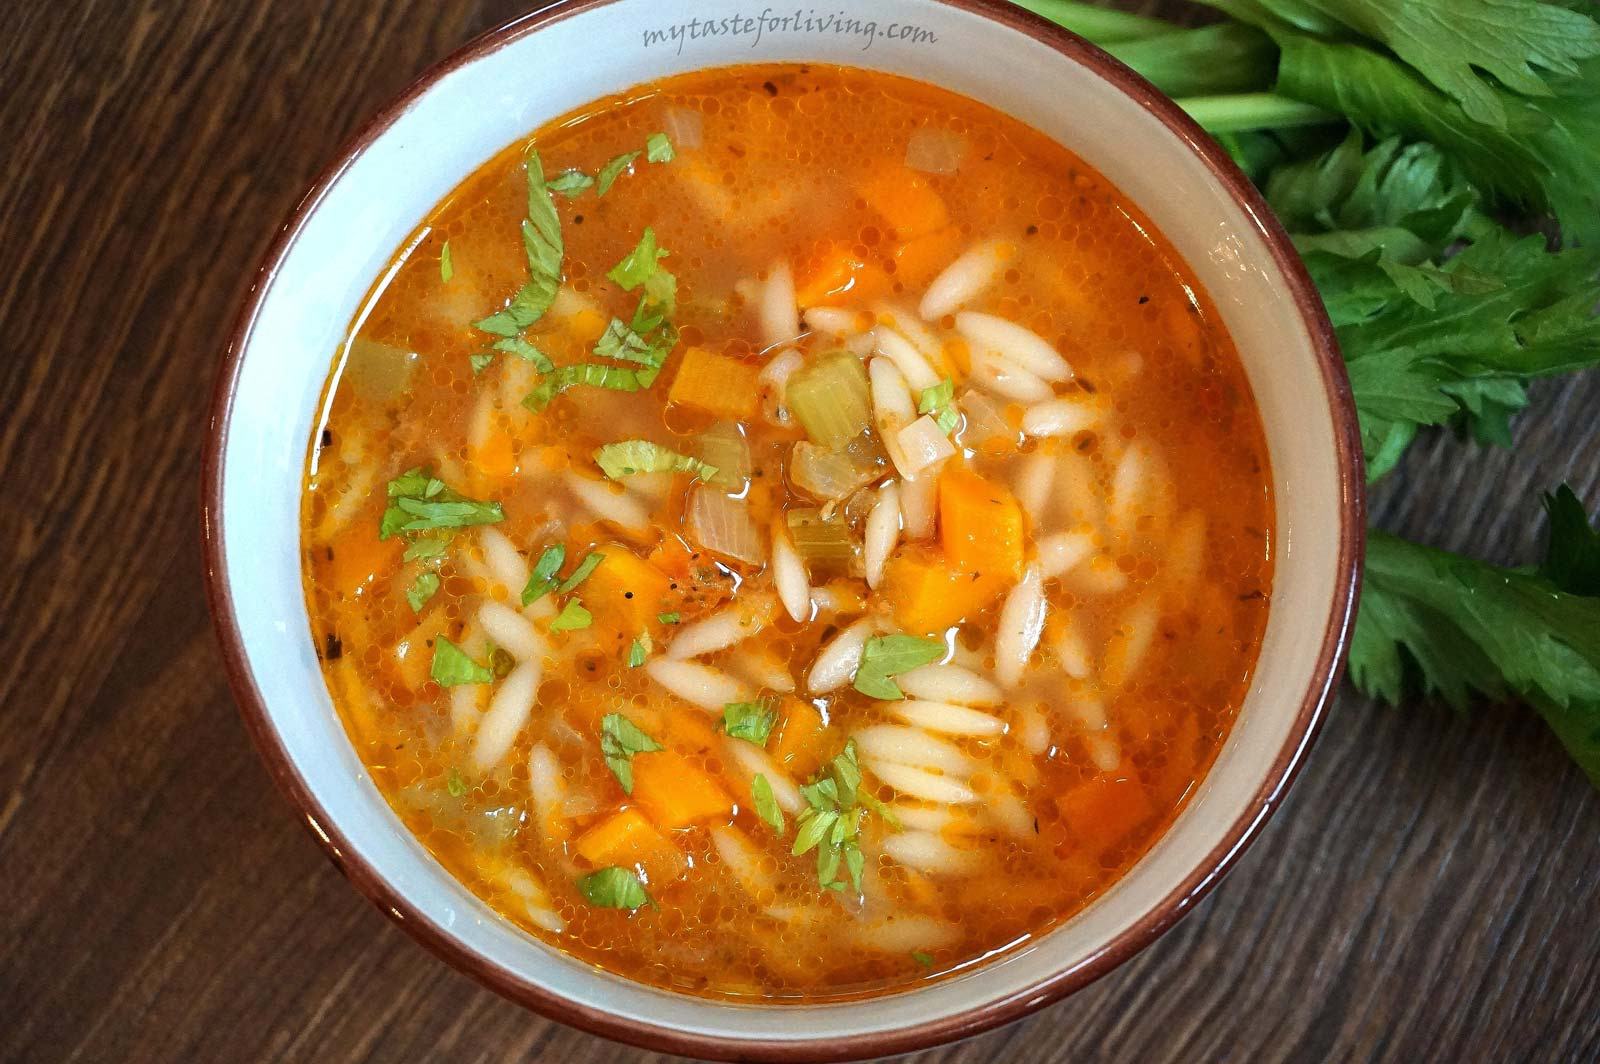 This fragrant vegetable soup with orzo is a tasty and easy proposal to diversify your standard menu. It is prepared with orzo, onions, carrots, celery, garlic and tomatoes.